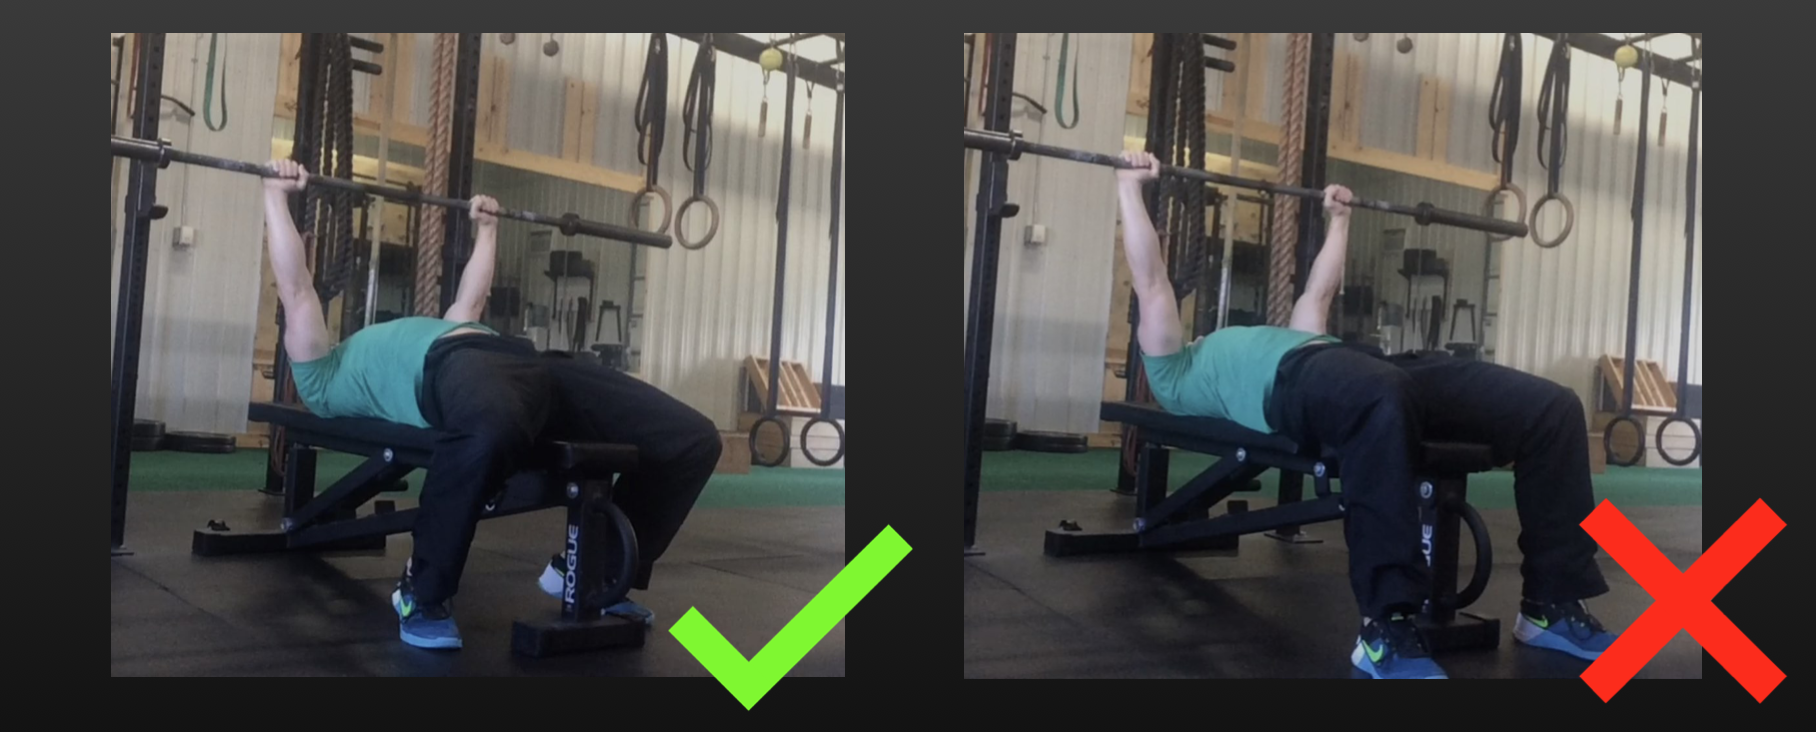 A good indication that you aren't creating sufficient leg drive is that your feet are placed directly below or in front of your knees. They should be planted on the ground back toward your shoulders. Your knees should be bent at an angle less than 90 degrees.